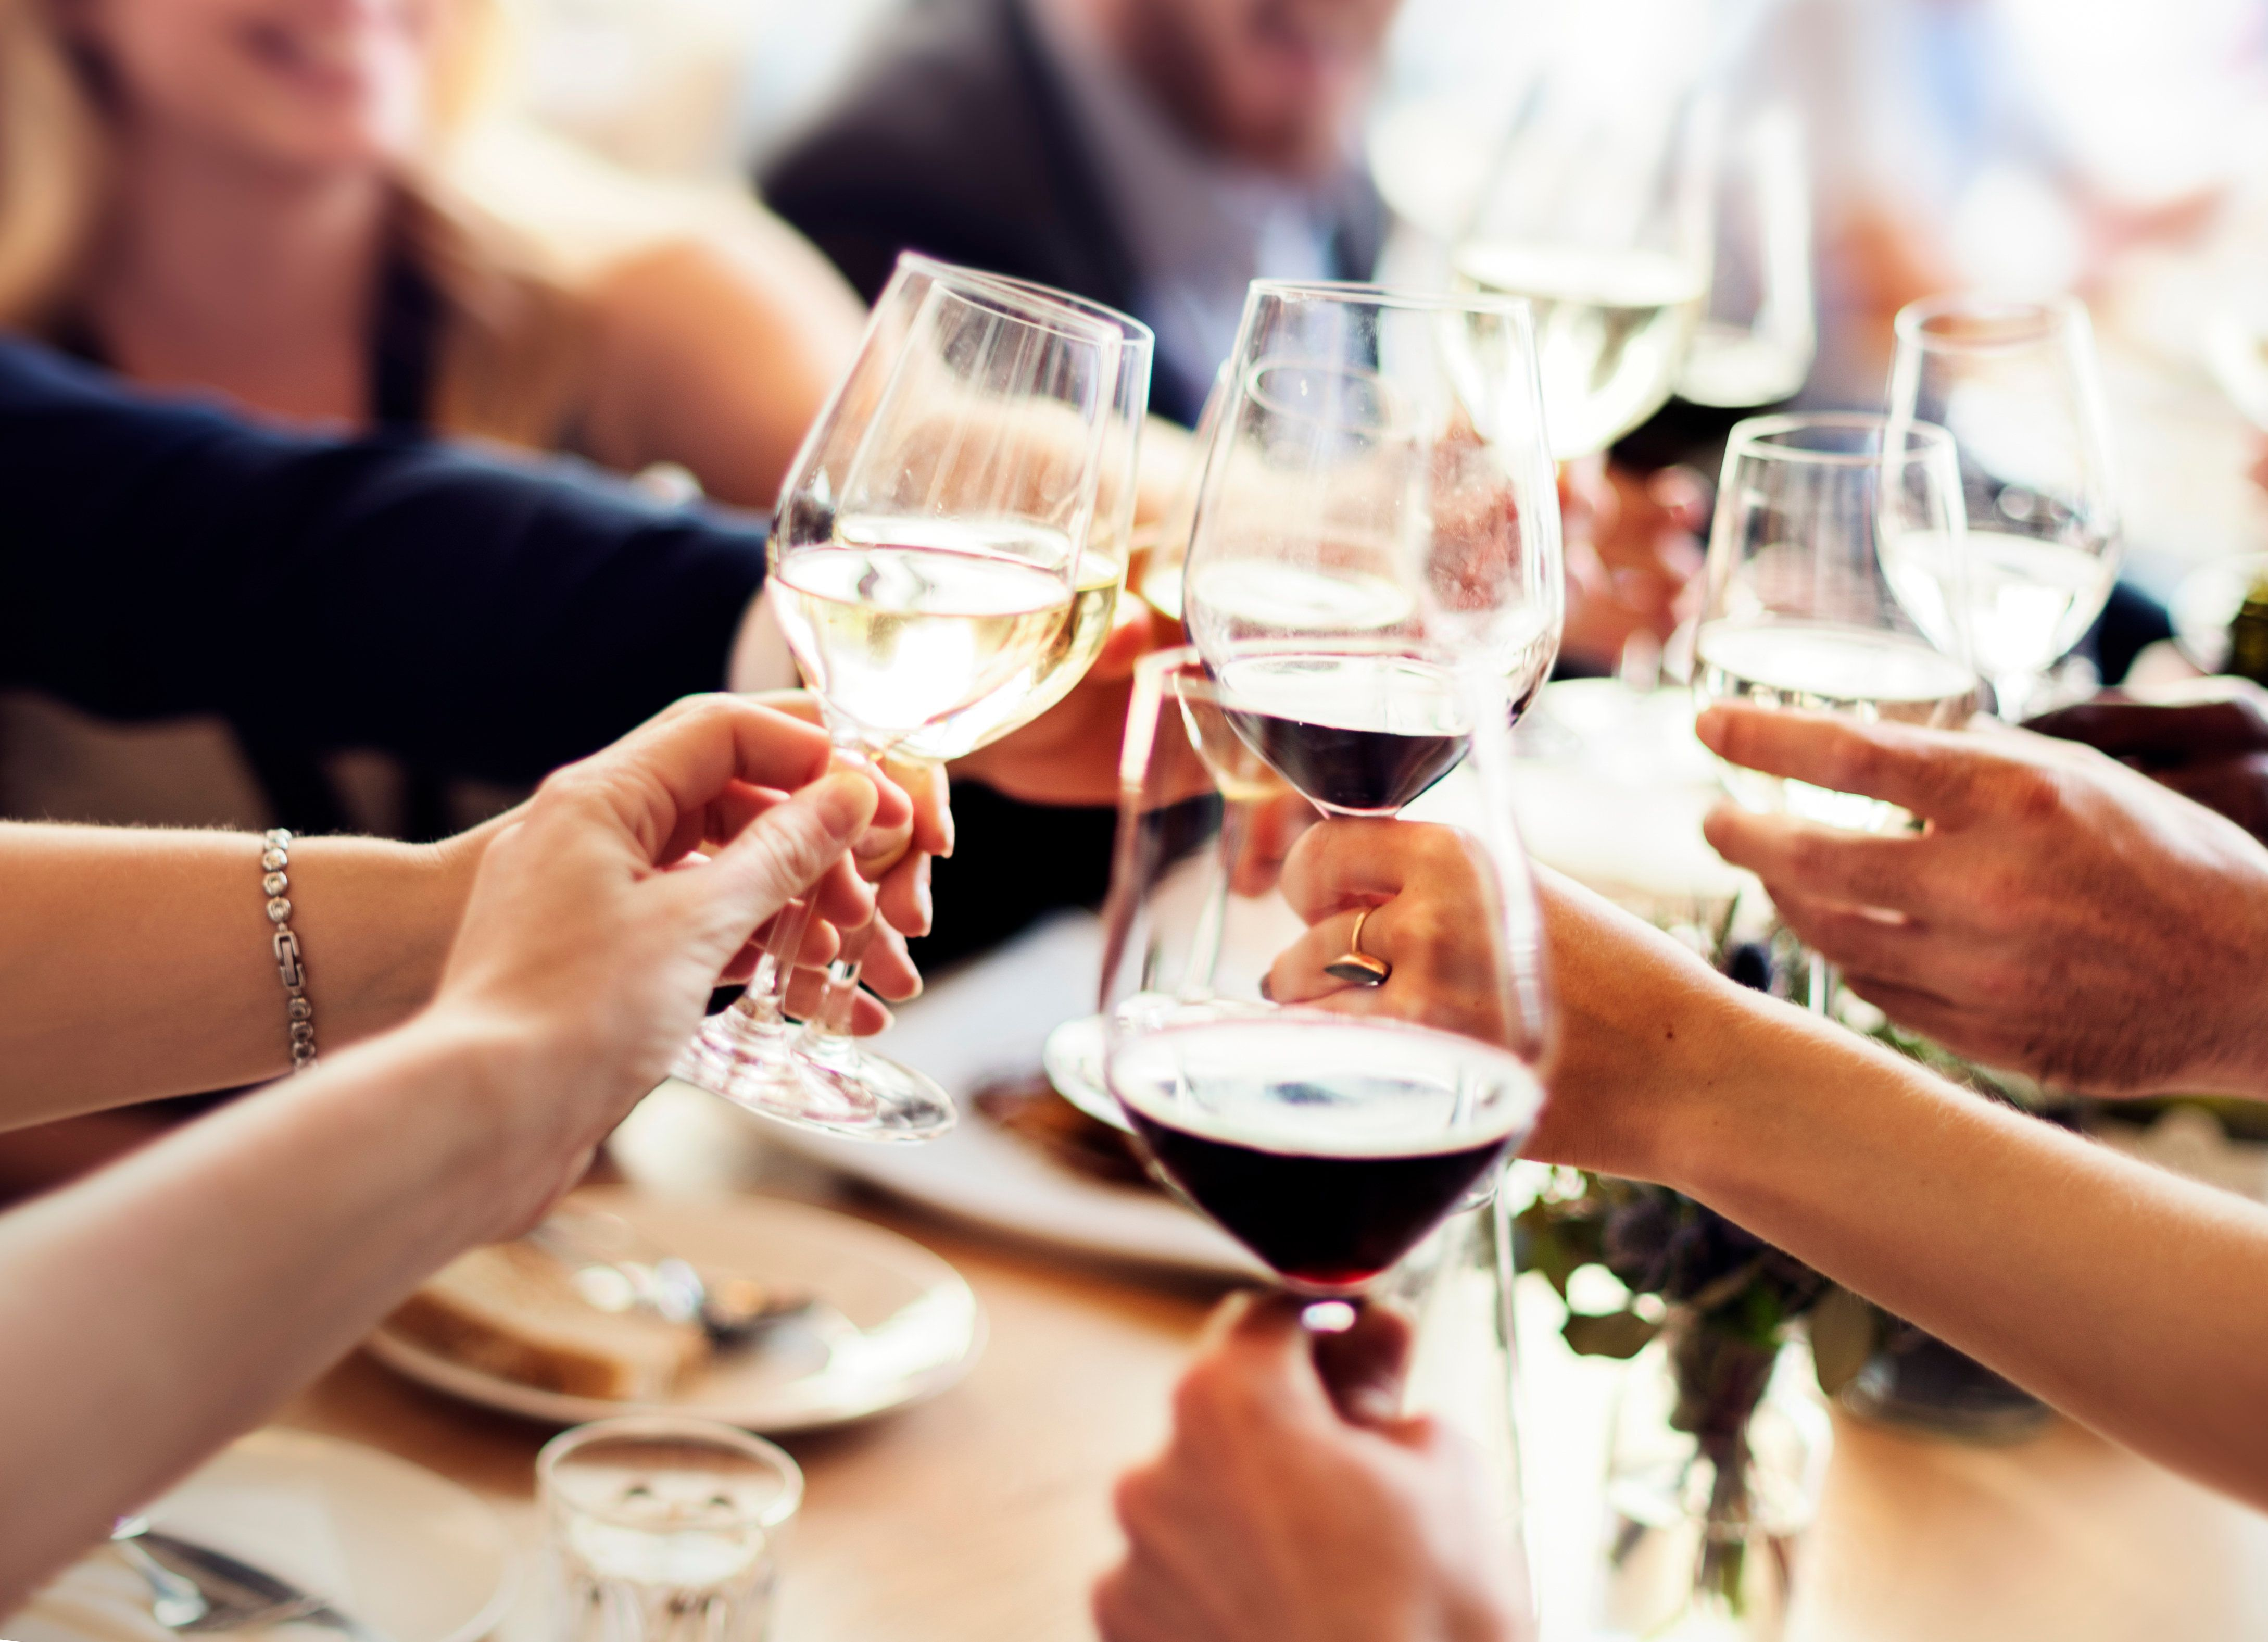 Lower Strength Wine And Beer Could Be Fuelling Lunchtime